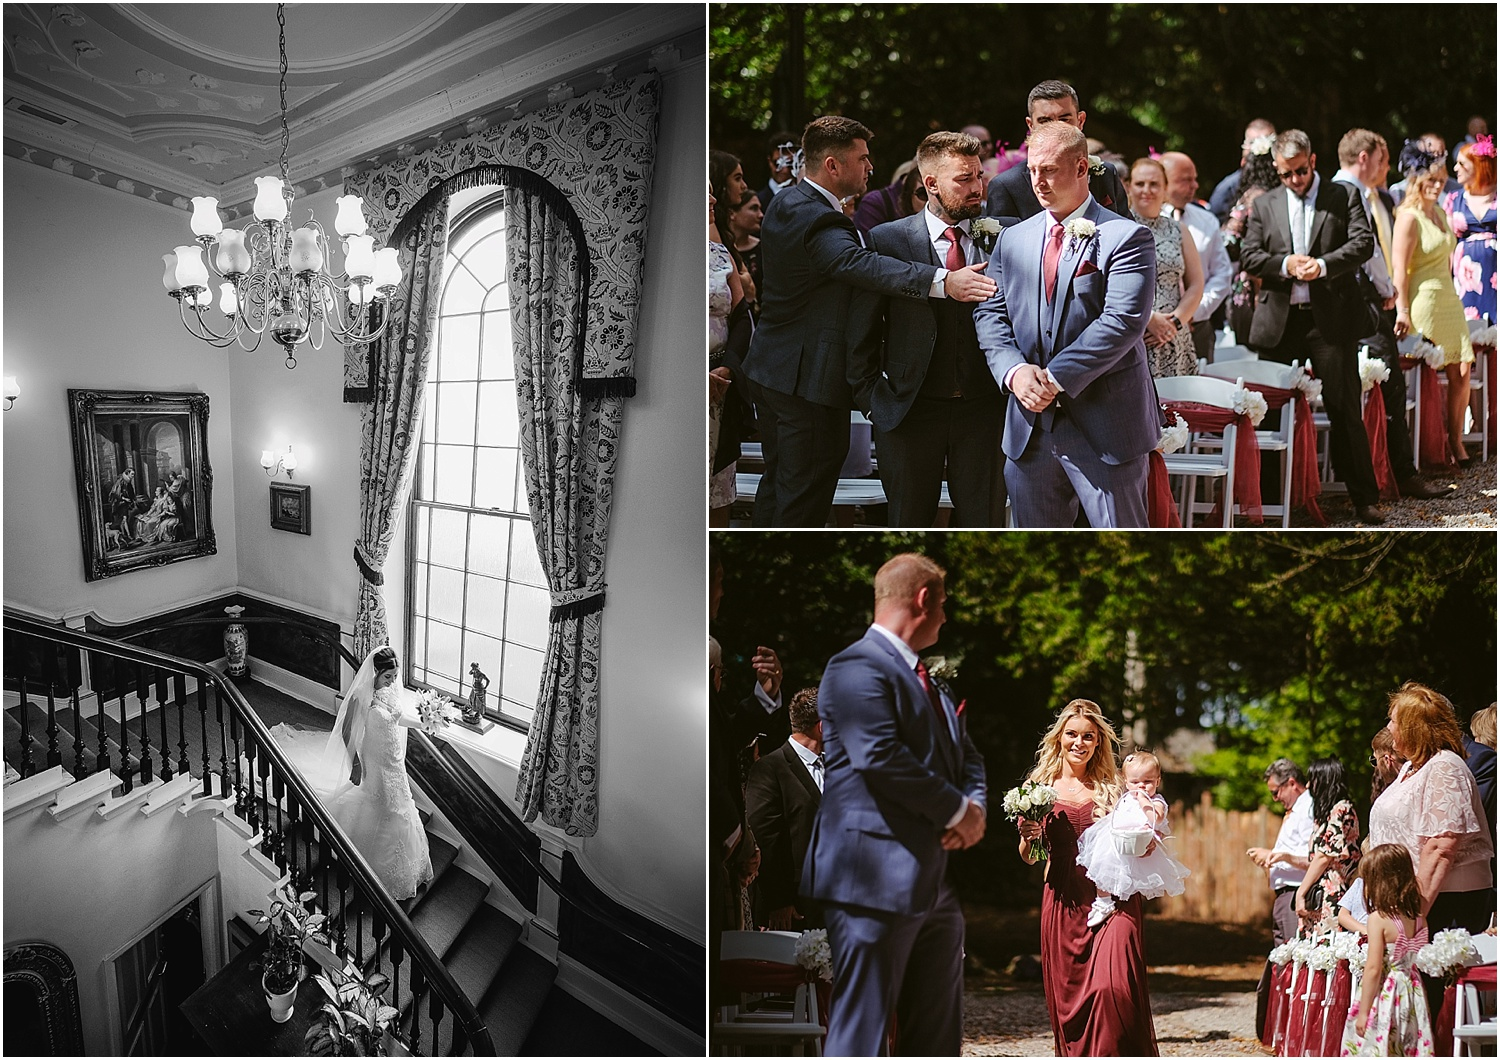 Wedding at Beamish Hall - wedding photography by www.2tonephotography.co.uk 133.jpg